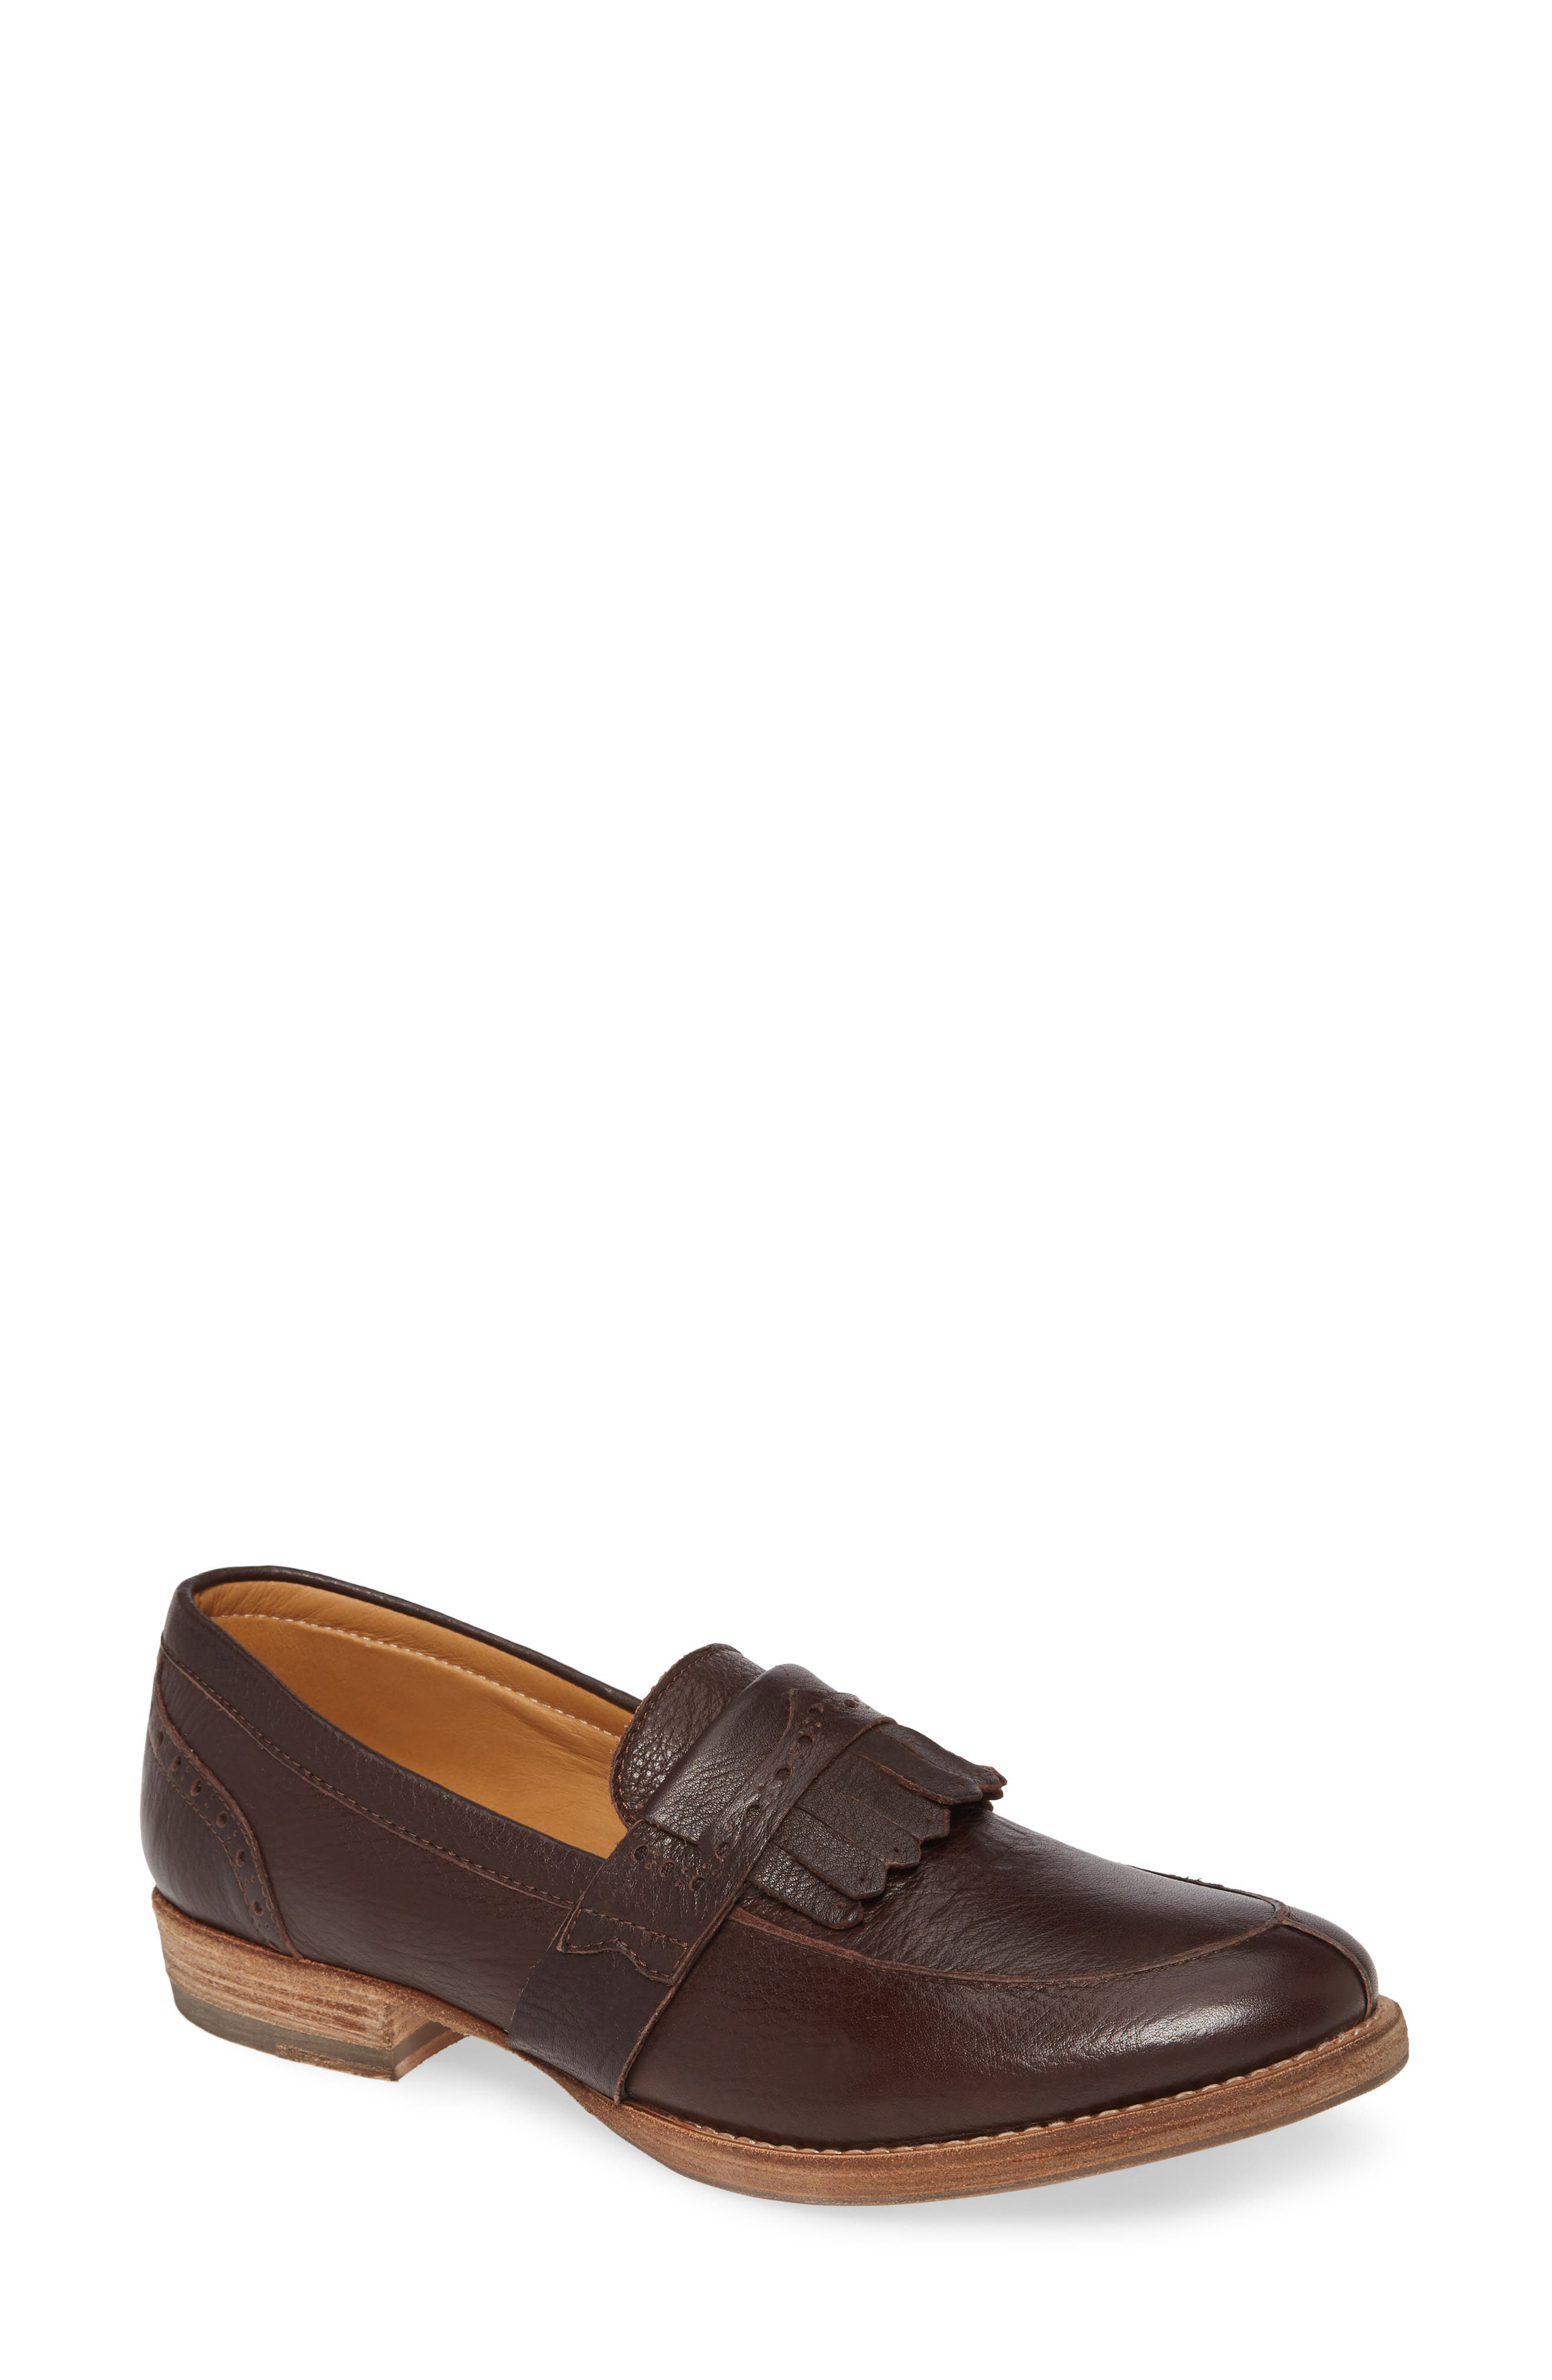 Clever loafer mixes kiltie and brogue detailing for an updated take on a timeless style. Style Name: Blackstone Hl57 Loafer (Women). Style Number: 5982771 1. Available in stores.